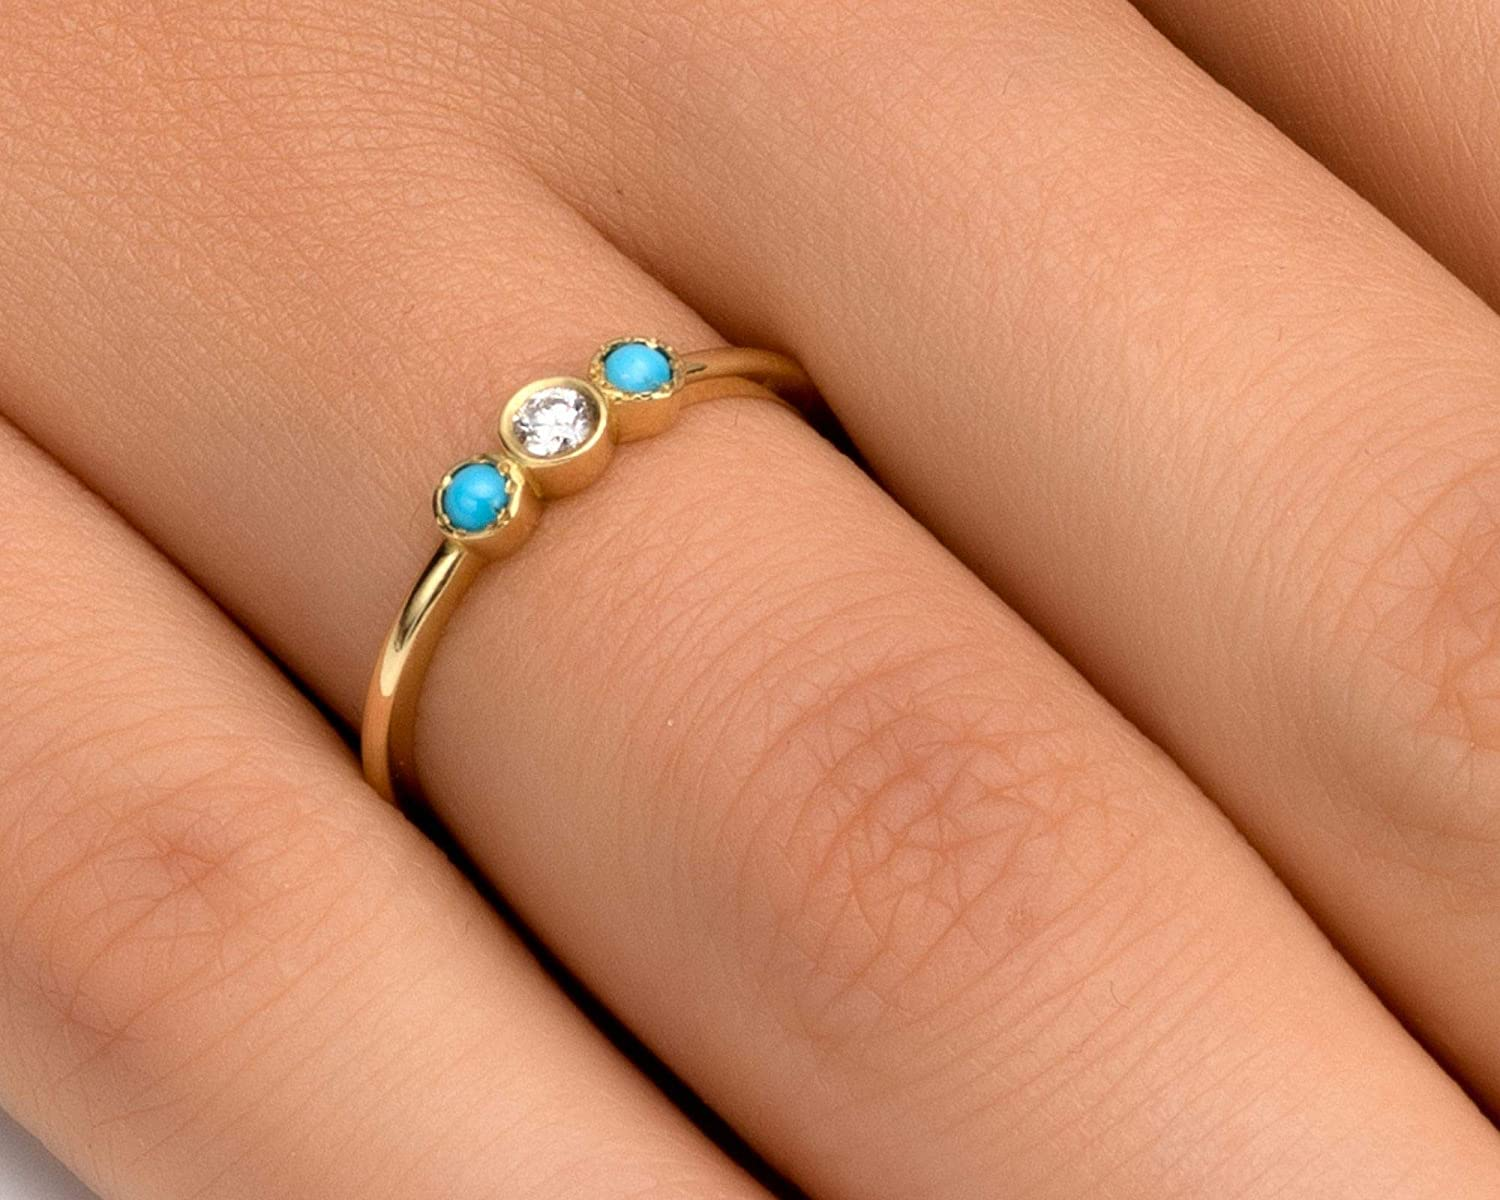 Diamond Engagement Ring or Wedding Band Rose or Yellow Solid Gold Modern Stacking Handmade Stacking Jewelry in 14k//18k White Diamond Ring for Women Multi Stone Turquoise and 0.05 ct 4-14US